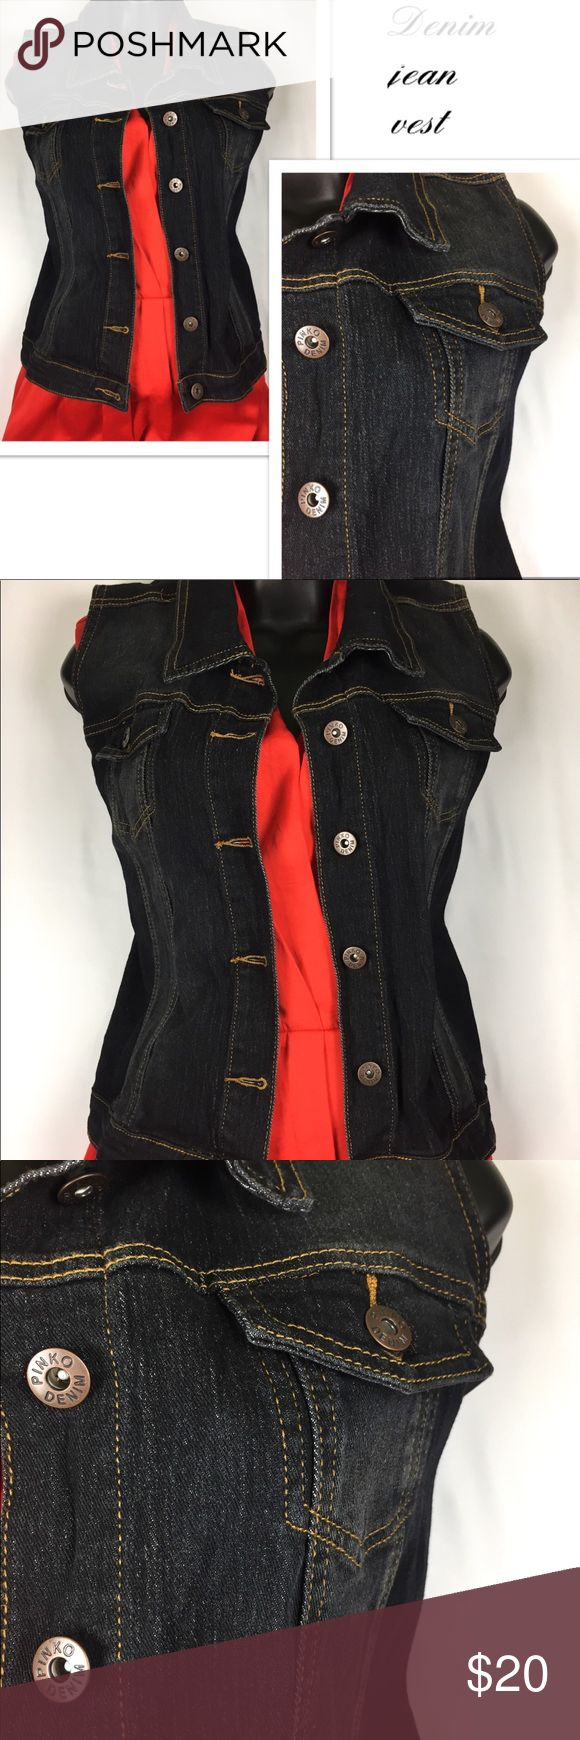 Jean vest pinko denim ✨LIKE NEW✨ Gently worn ✨LIKE NEW✨ denim jean jacket vest in perfect condition. No rips, stains, or tears. Smoke free home and fast shipping pinko denim Jackets & Coats Vests